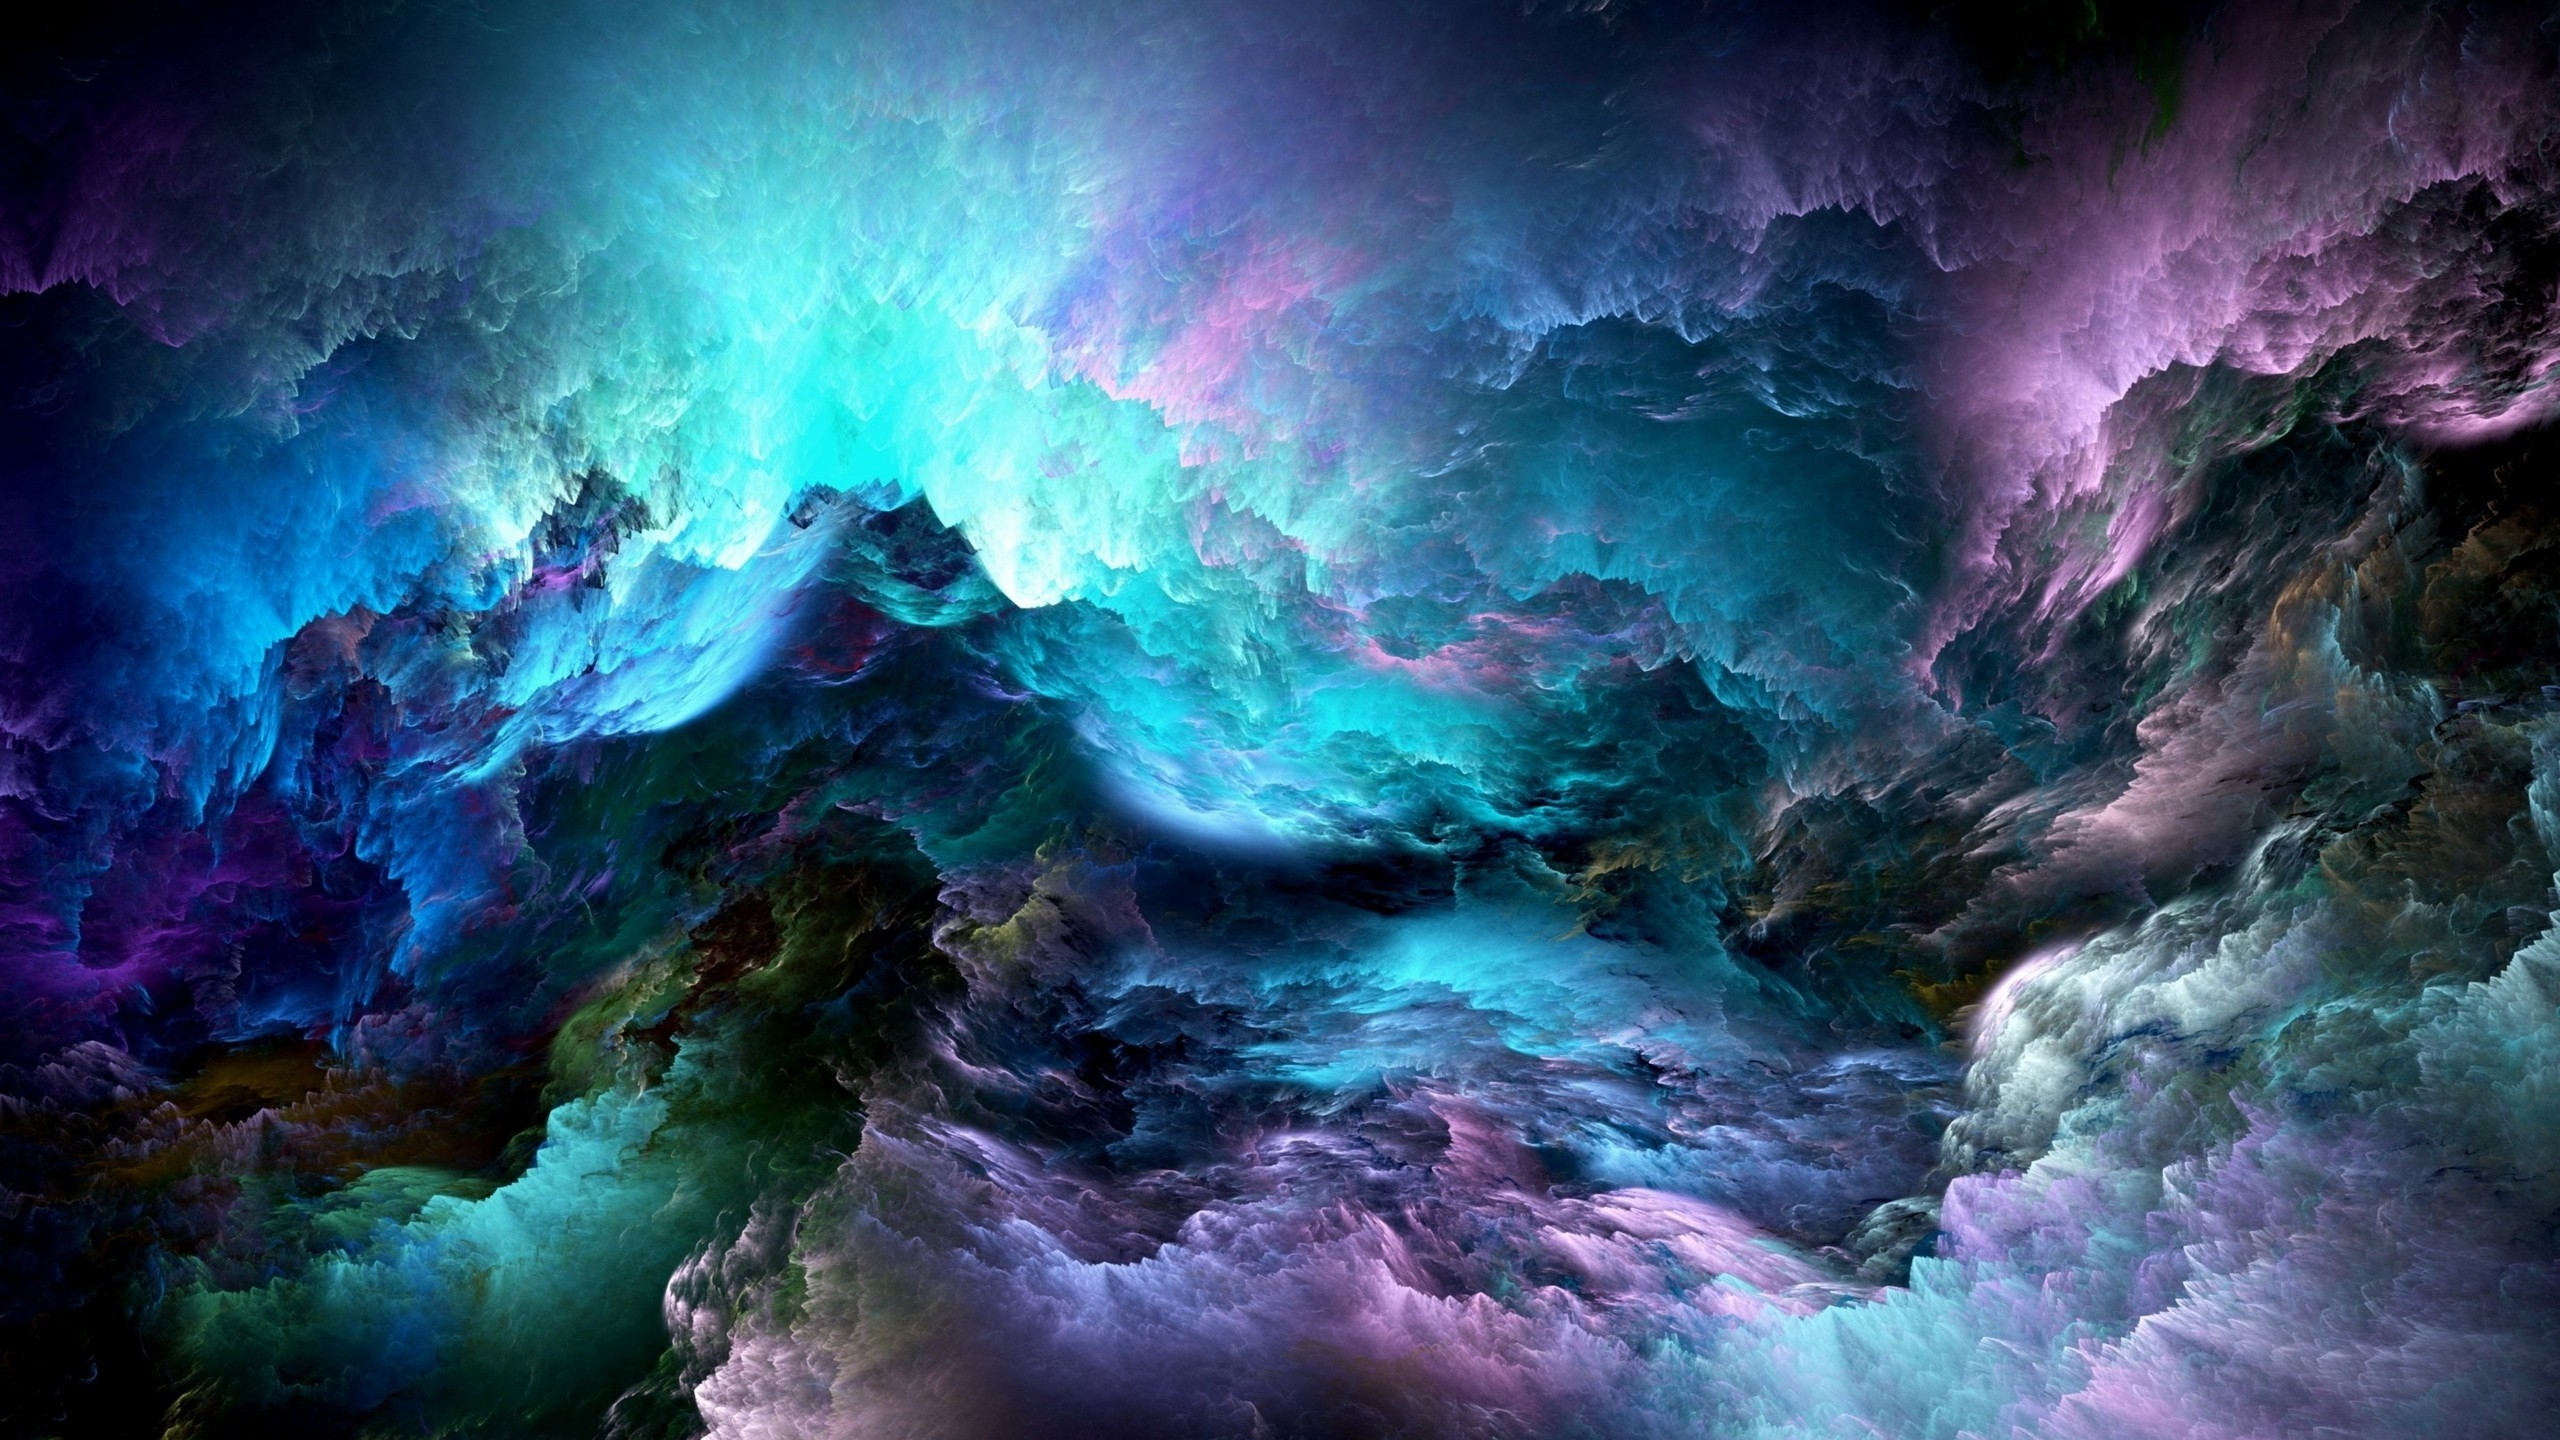 Res: 2560x1440, HD Wallpaper | Background Image ID:680406.  Artistic Cloud